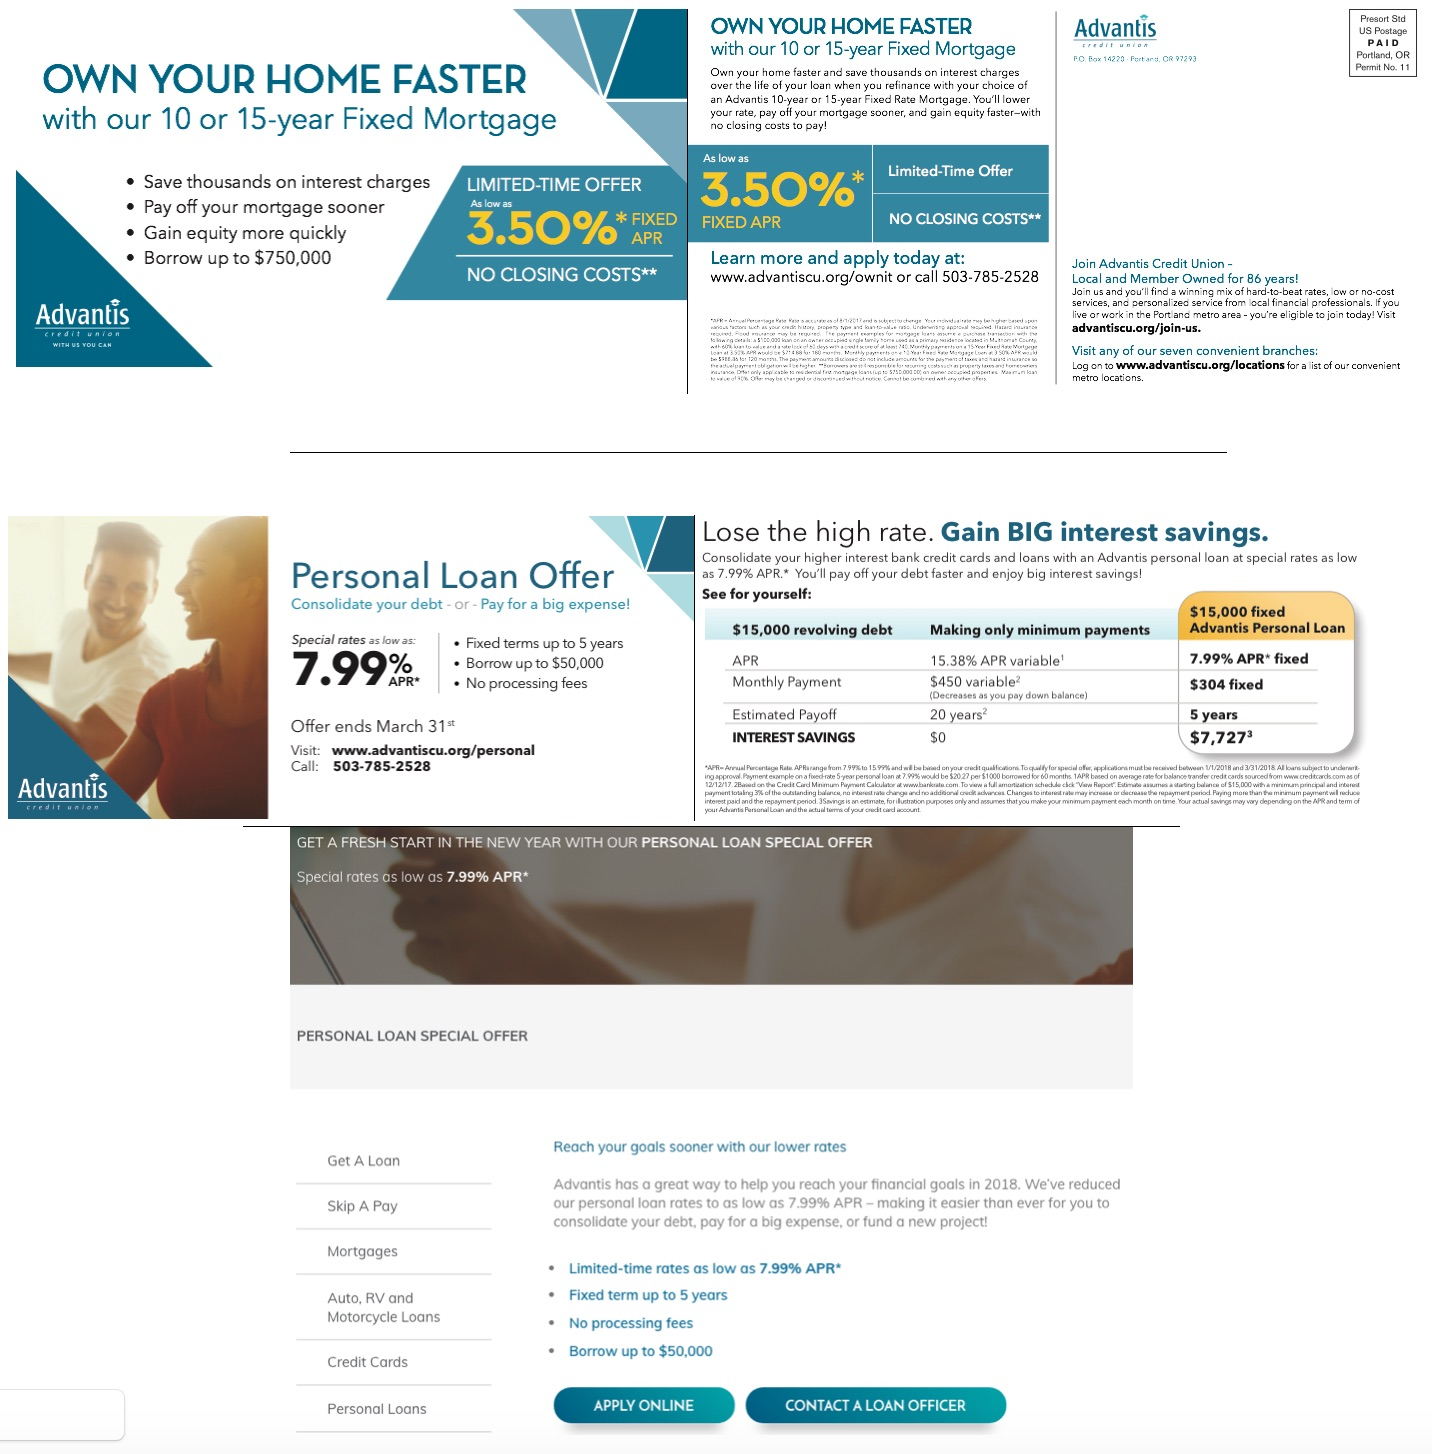 Top:  10- or 15-Year Fixed Mortgage mailer front & back.  Download this asset.   Middle:  Personal Loan statement stuffer. Download this asset.   Bottom:  Excerpt of Personal Loan Offer landing page.  Download this asset.